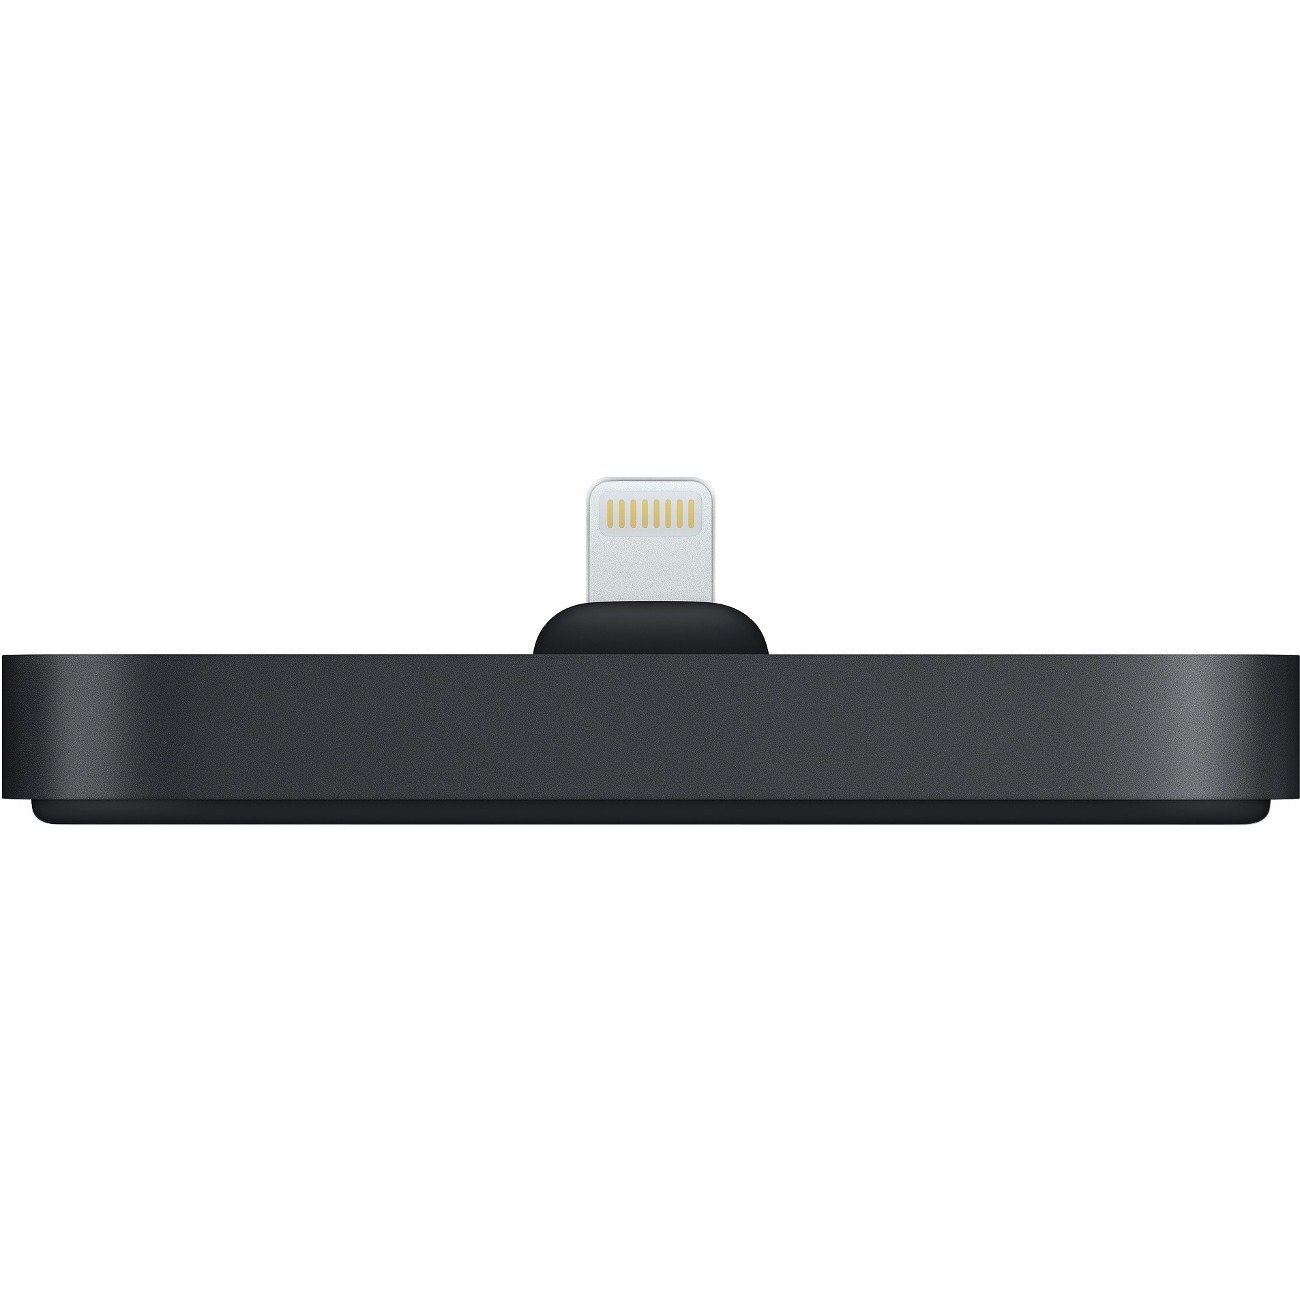 Apple Docking Cradle for iPhone, iPod, iPod touch